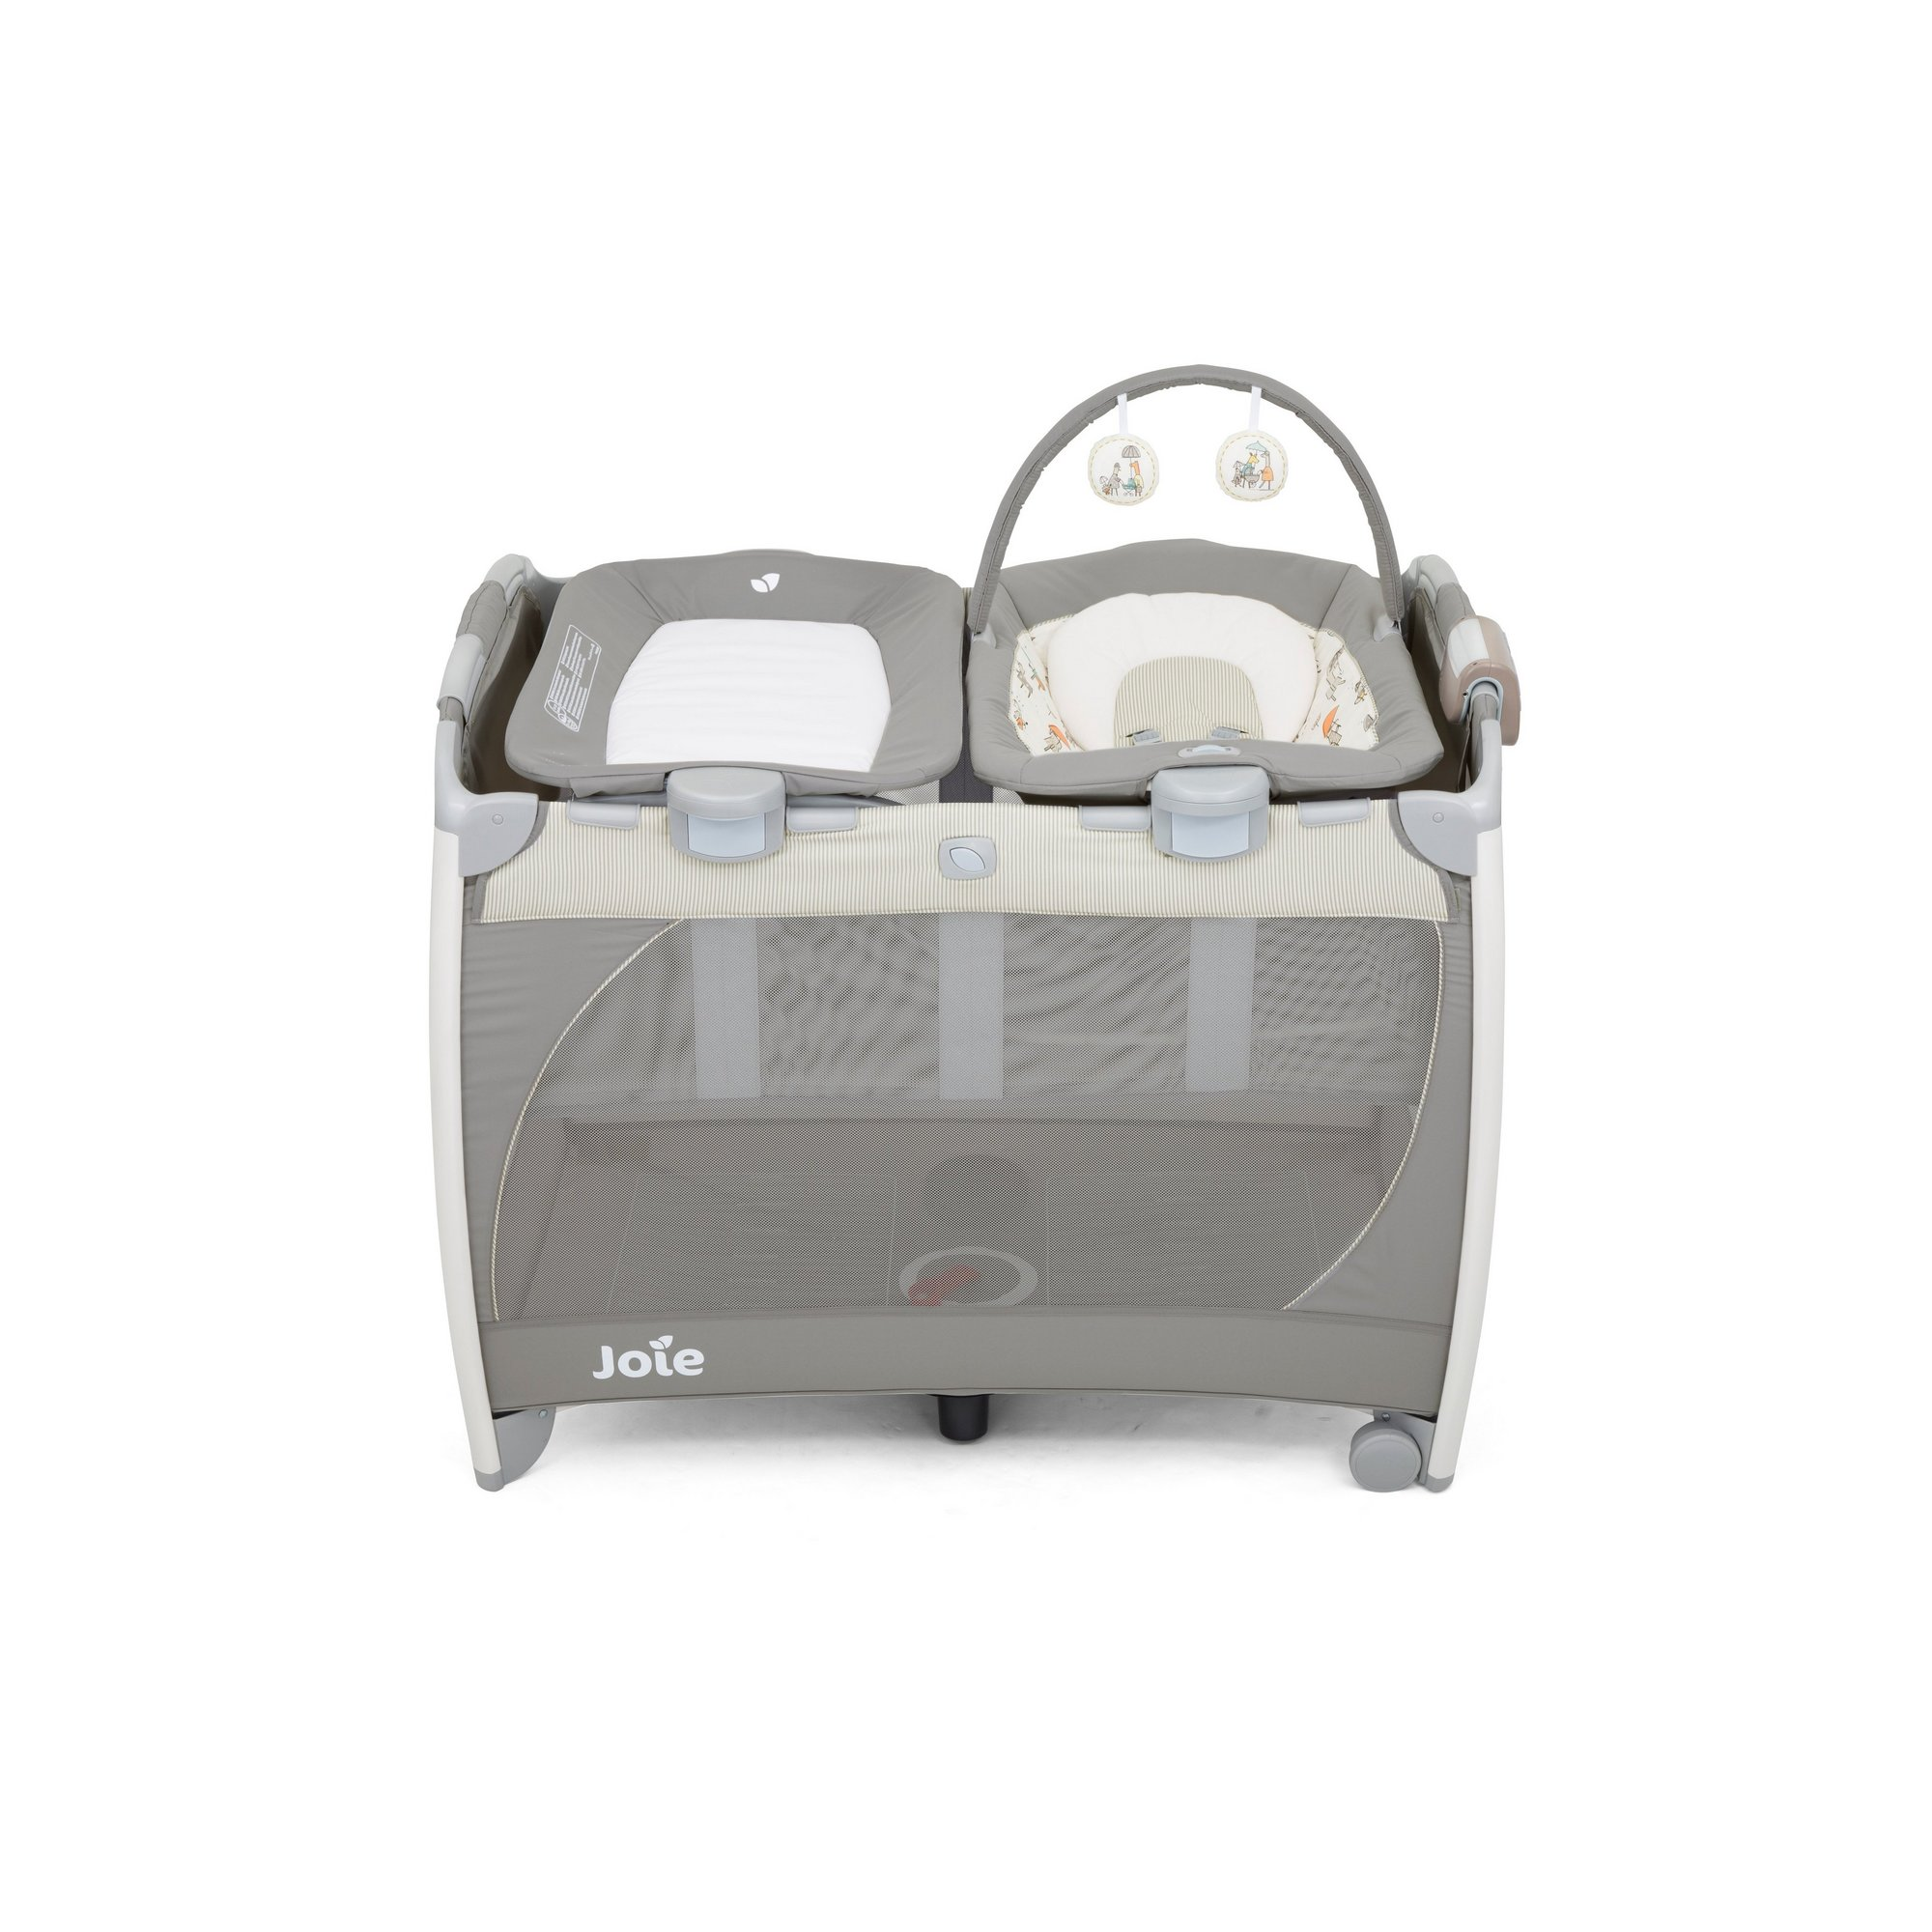 Image of Joie Excursion Change and Bounce Travel Cot - In the Rain